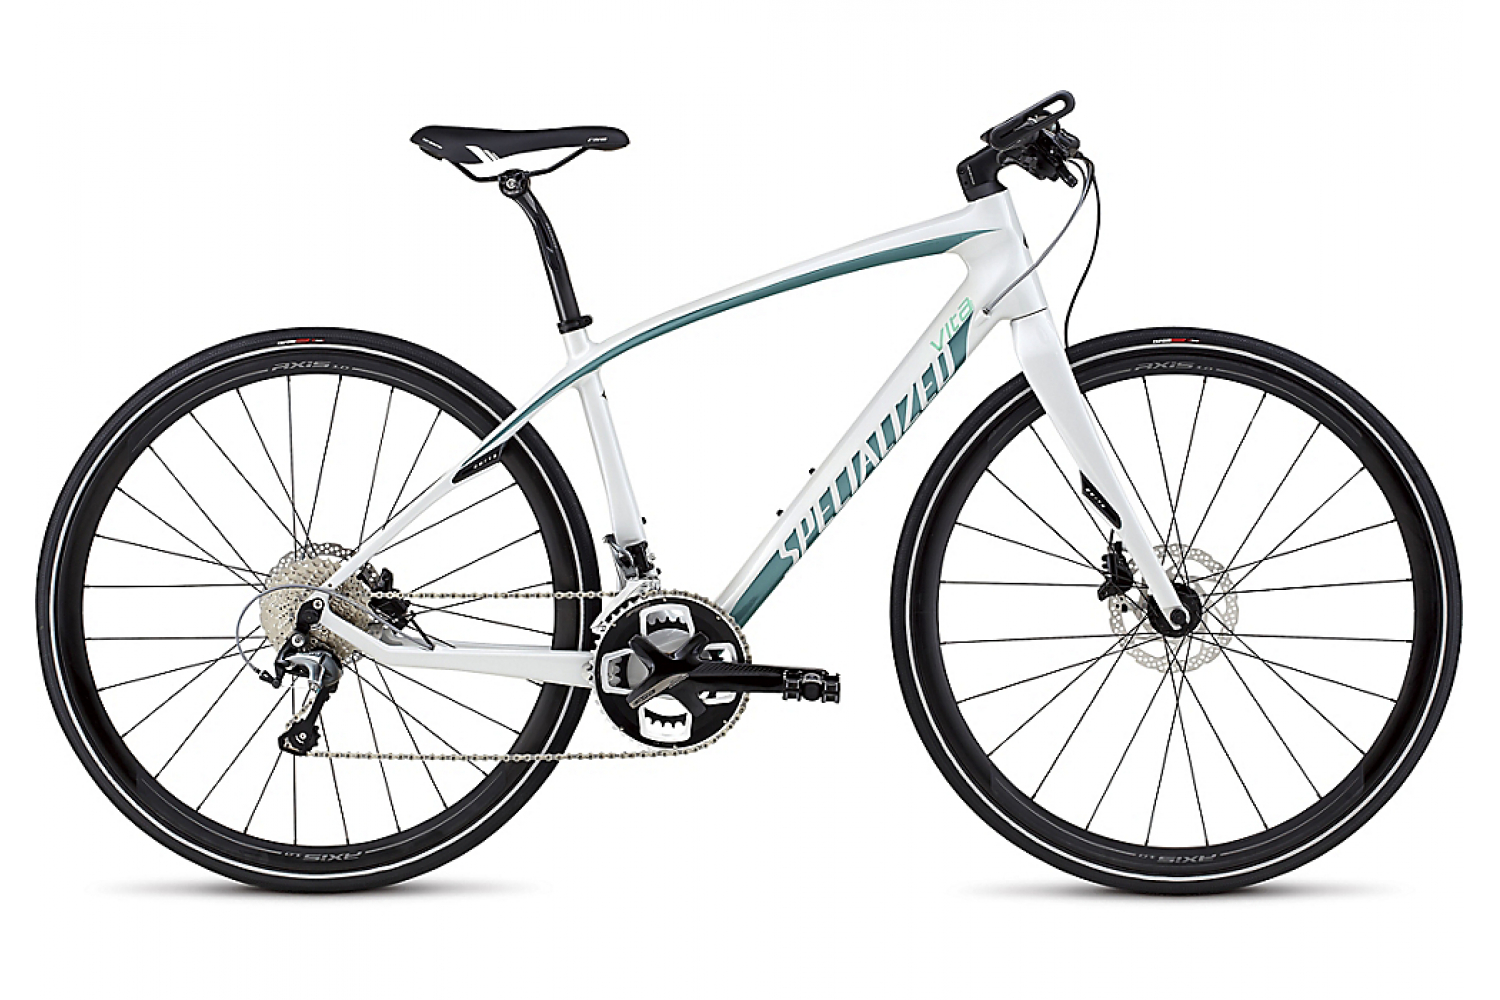 Городские Specialized Vita Comp Carbon Disc 2017 Артикул 92916-5001, 92916-5002, 92916-5003